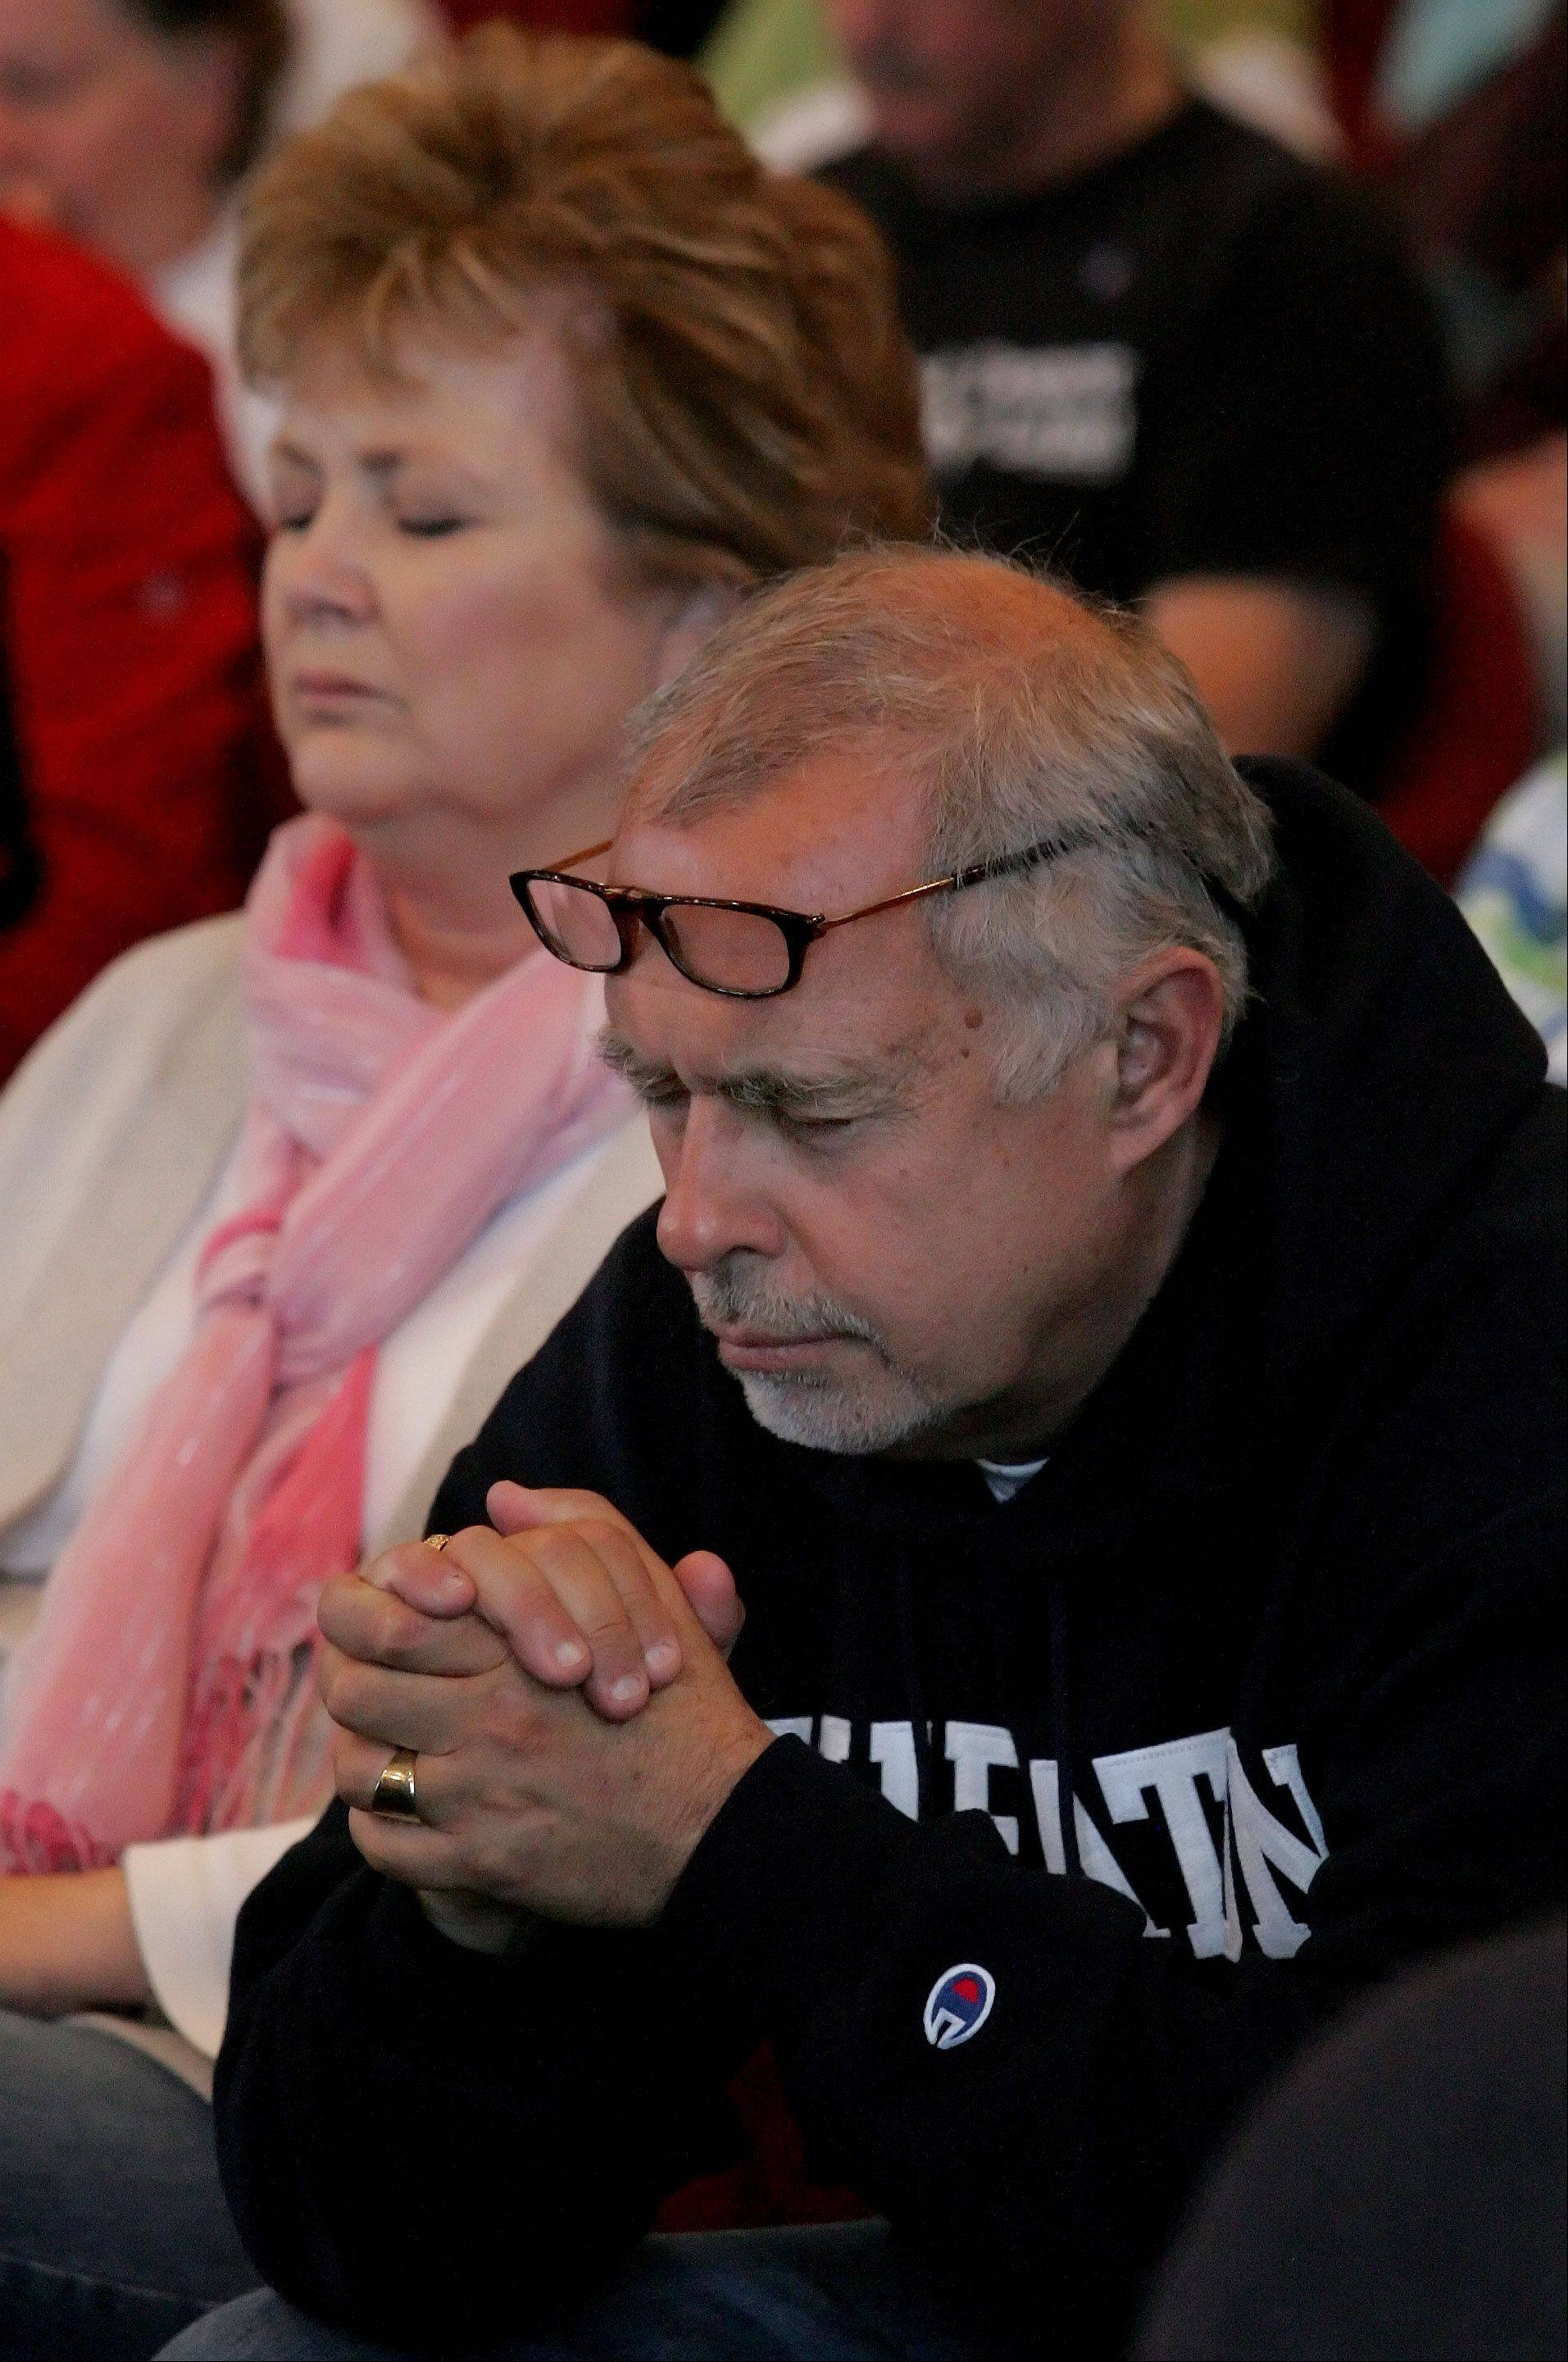 The Rev. Greg Asimakoupoulos and his wife, Wendy, take part in a National Day of Prayer in Naperville. A former Daily Herald community columnist, Asimakoupoulos says he takes comfort in his faith and poetry as he recalls the events of Sept. 11.